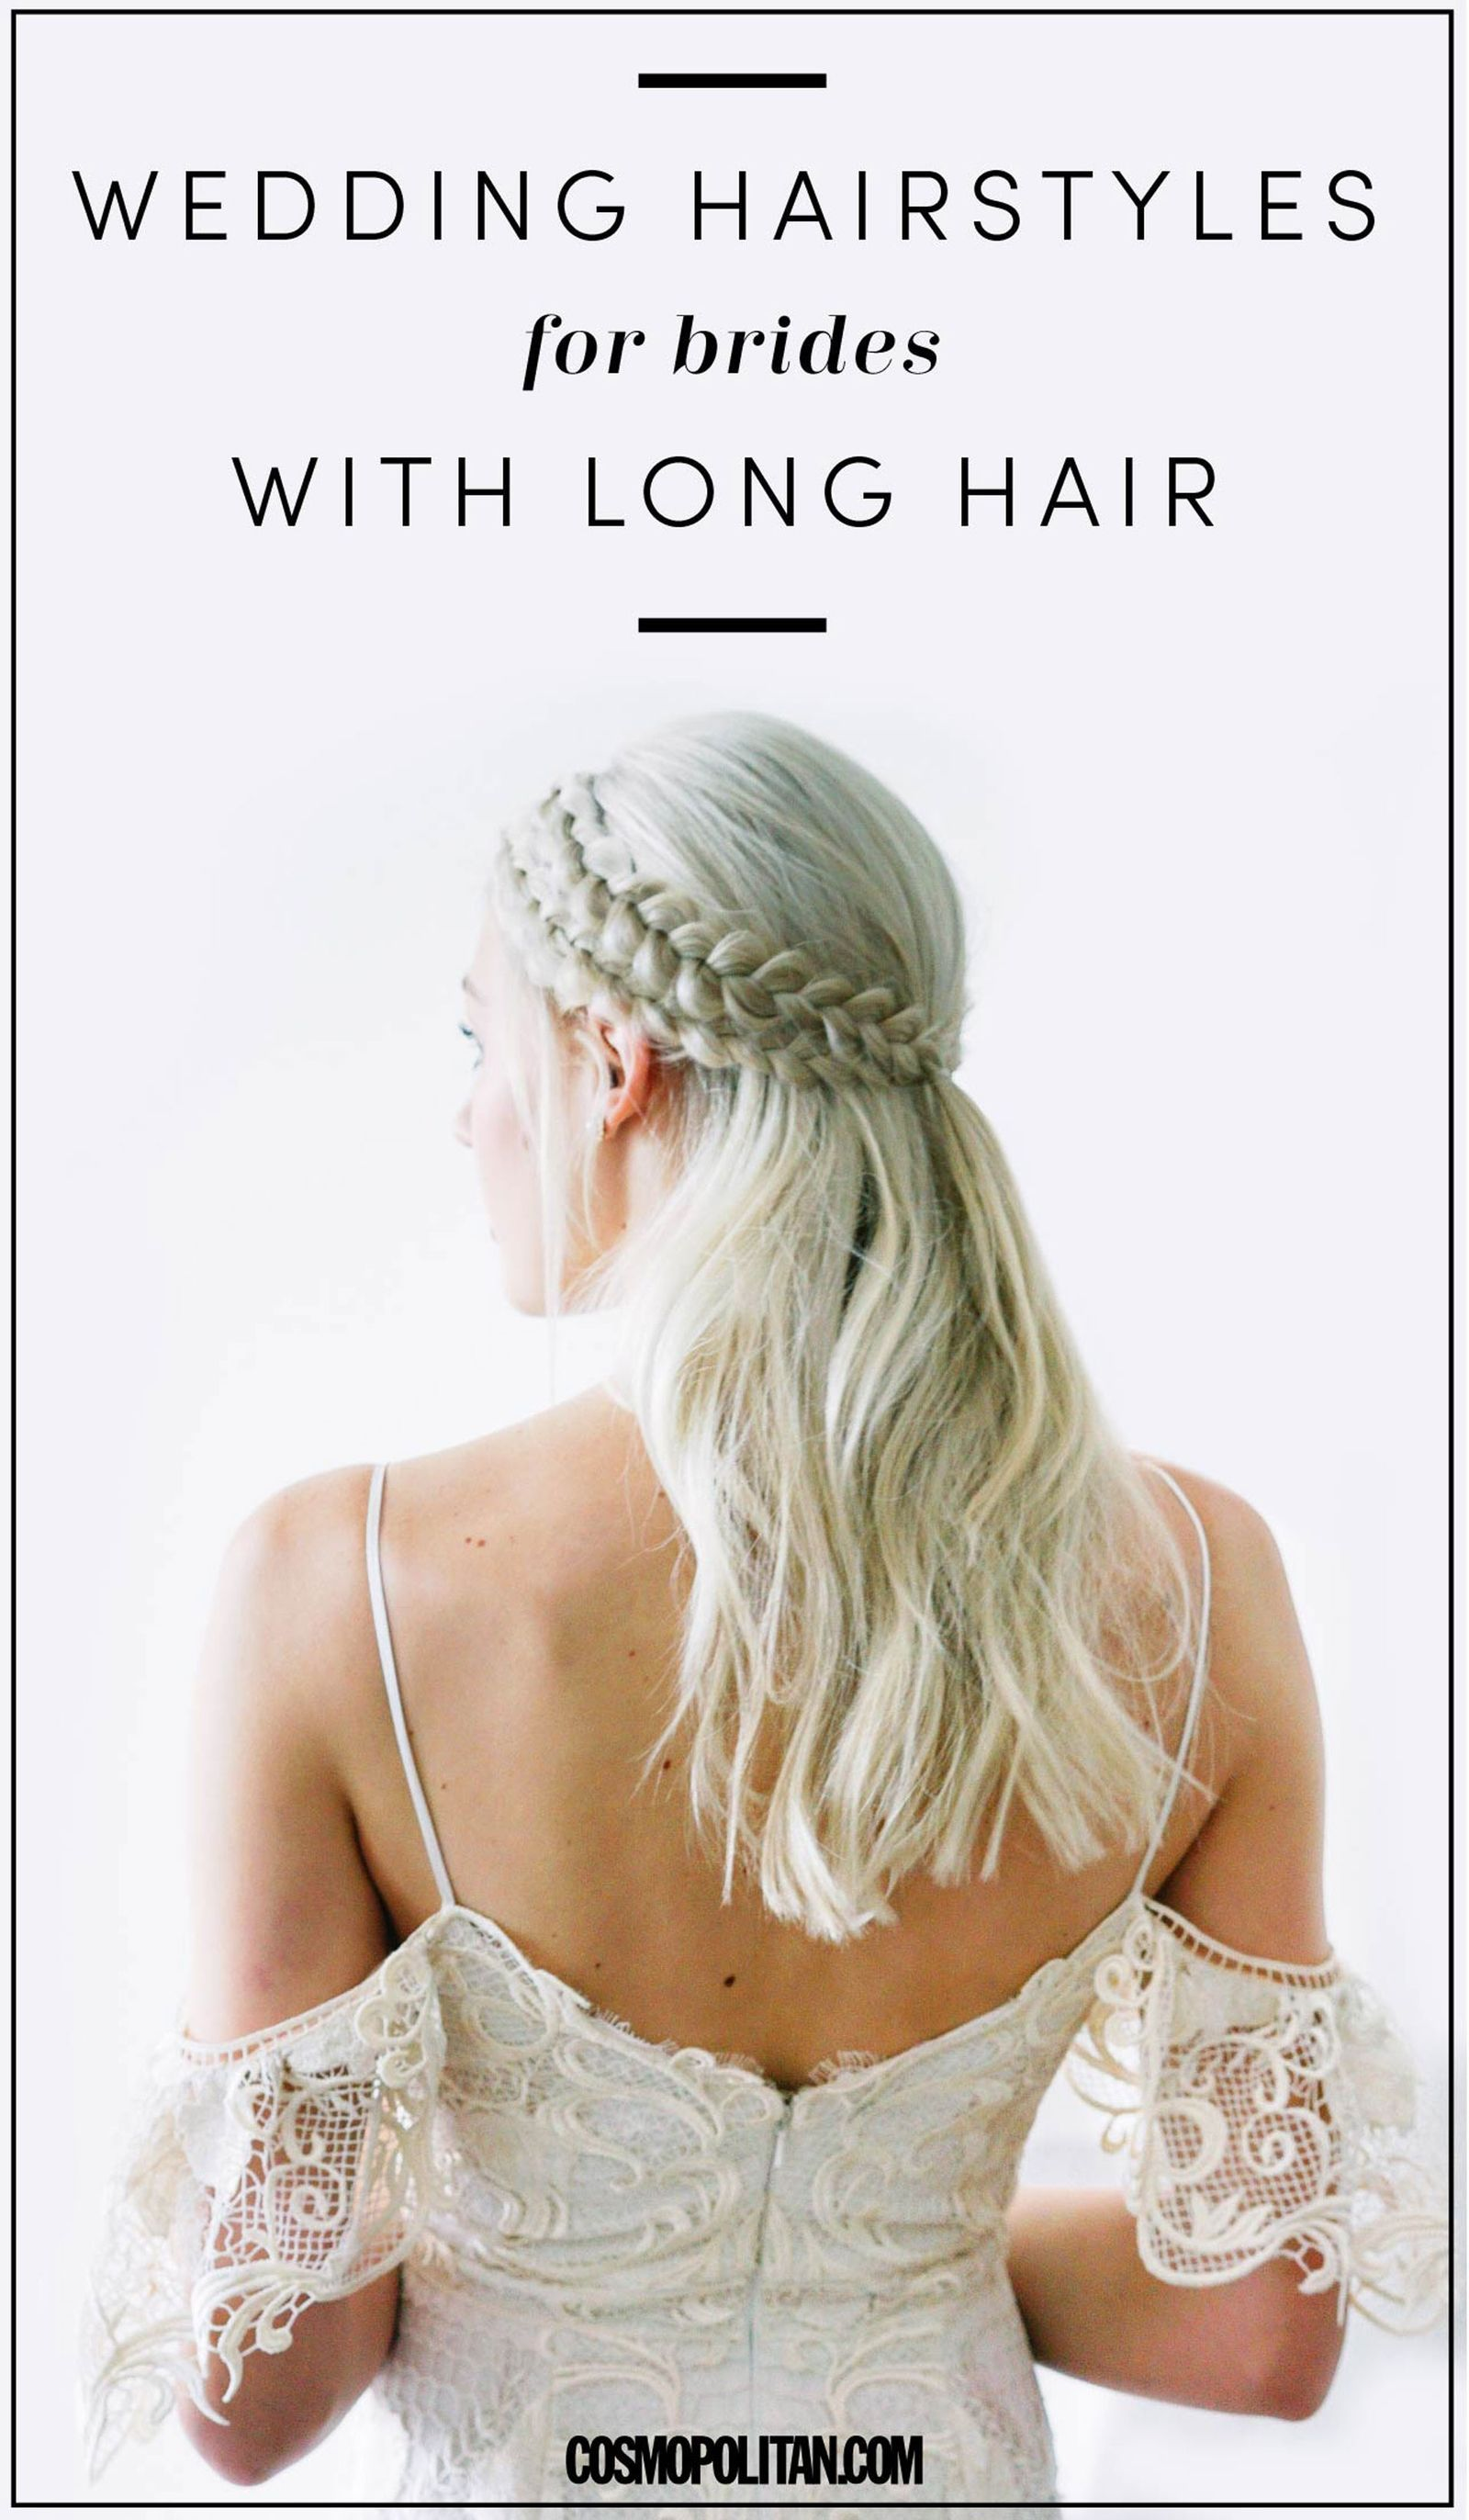 25 Wedding Hairstyles for Brides With Long Hair | Cosmopolitan ...